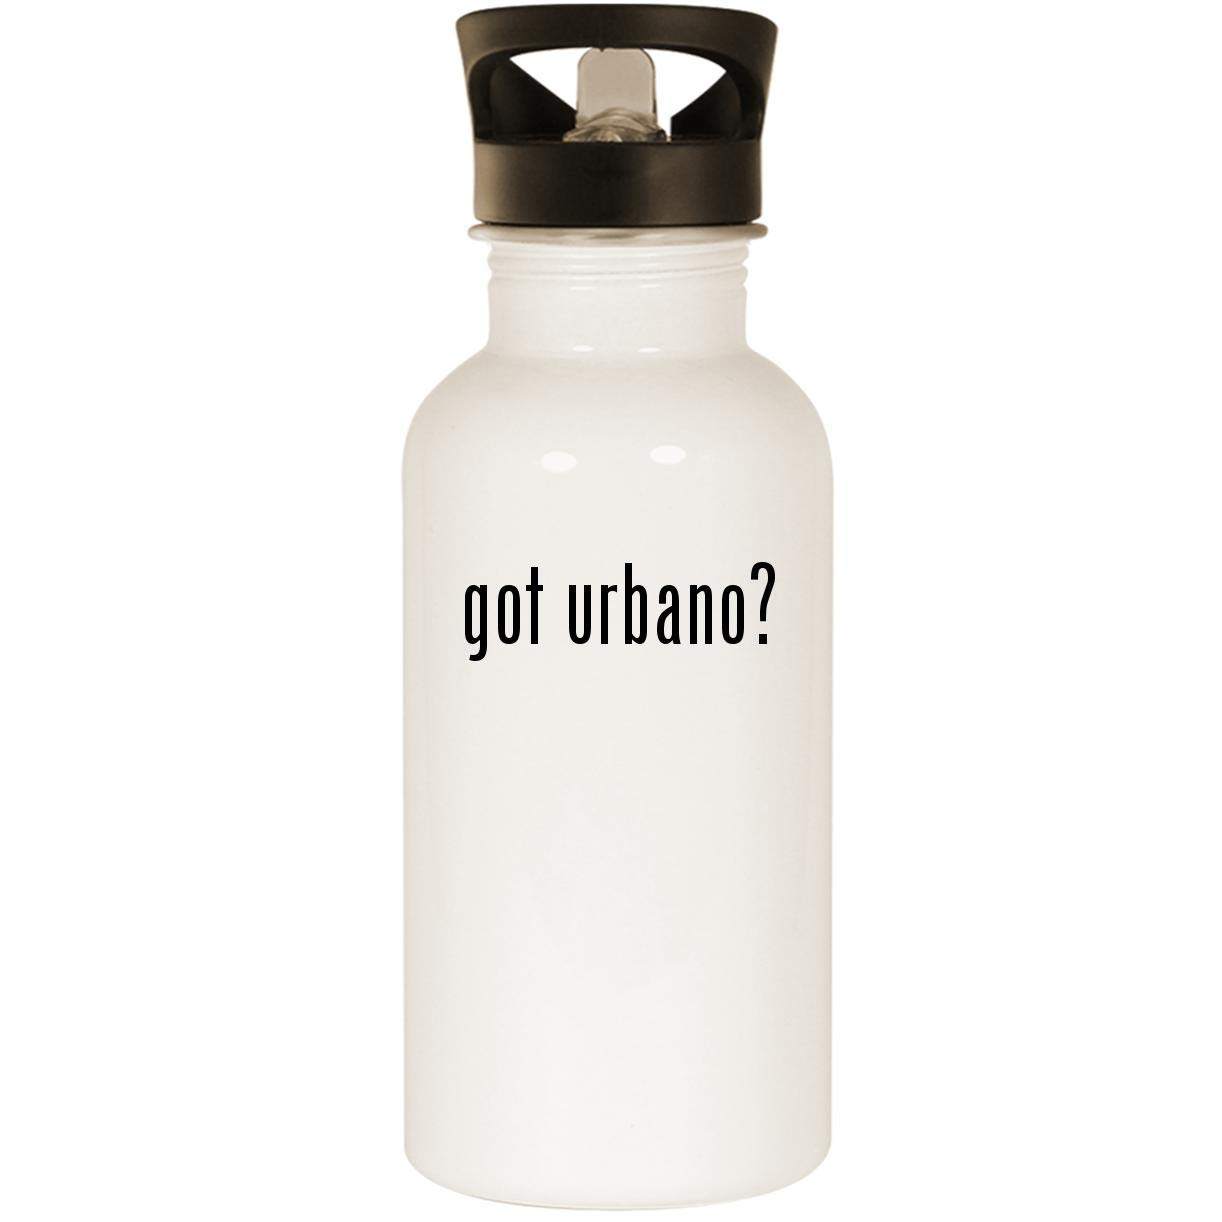 got urbano? - Stainless Steel 20oz Road Ready Water Bottle, White